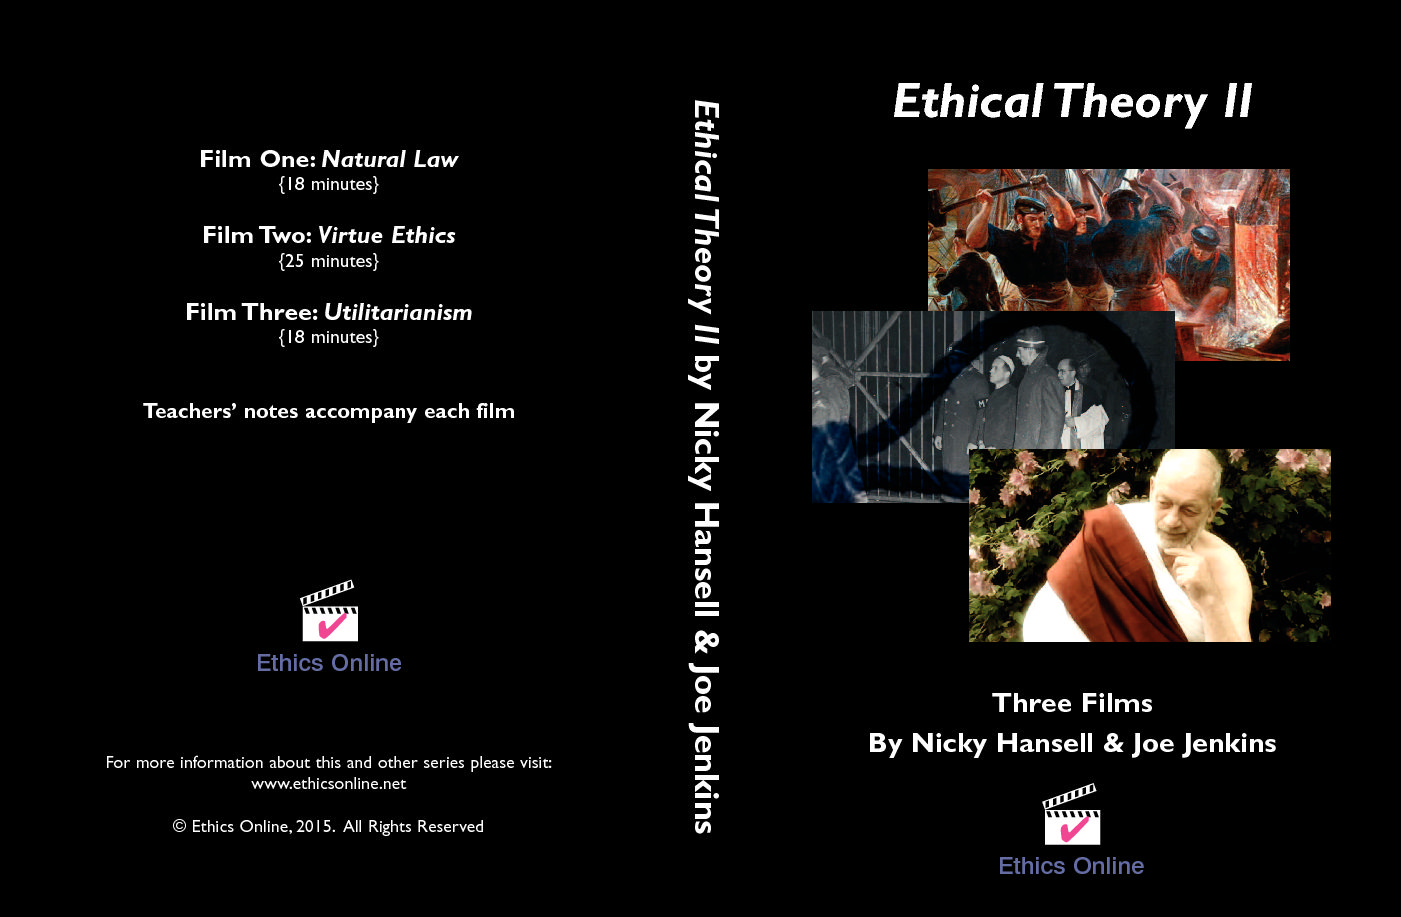 Ehical Theory 2 DVD proof